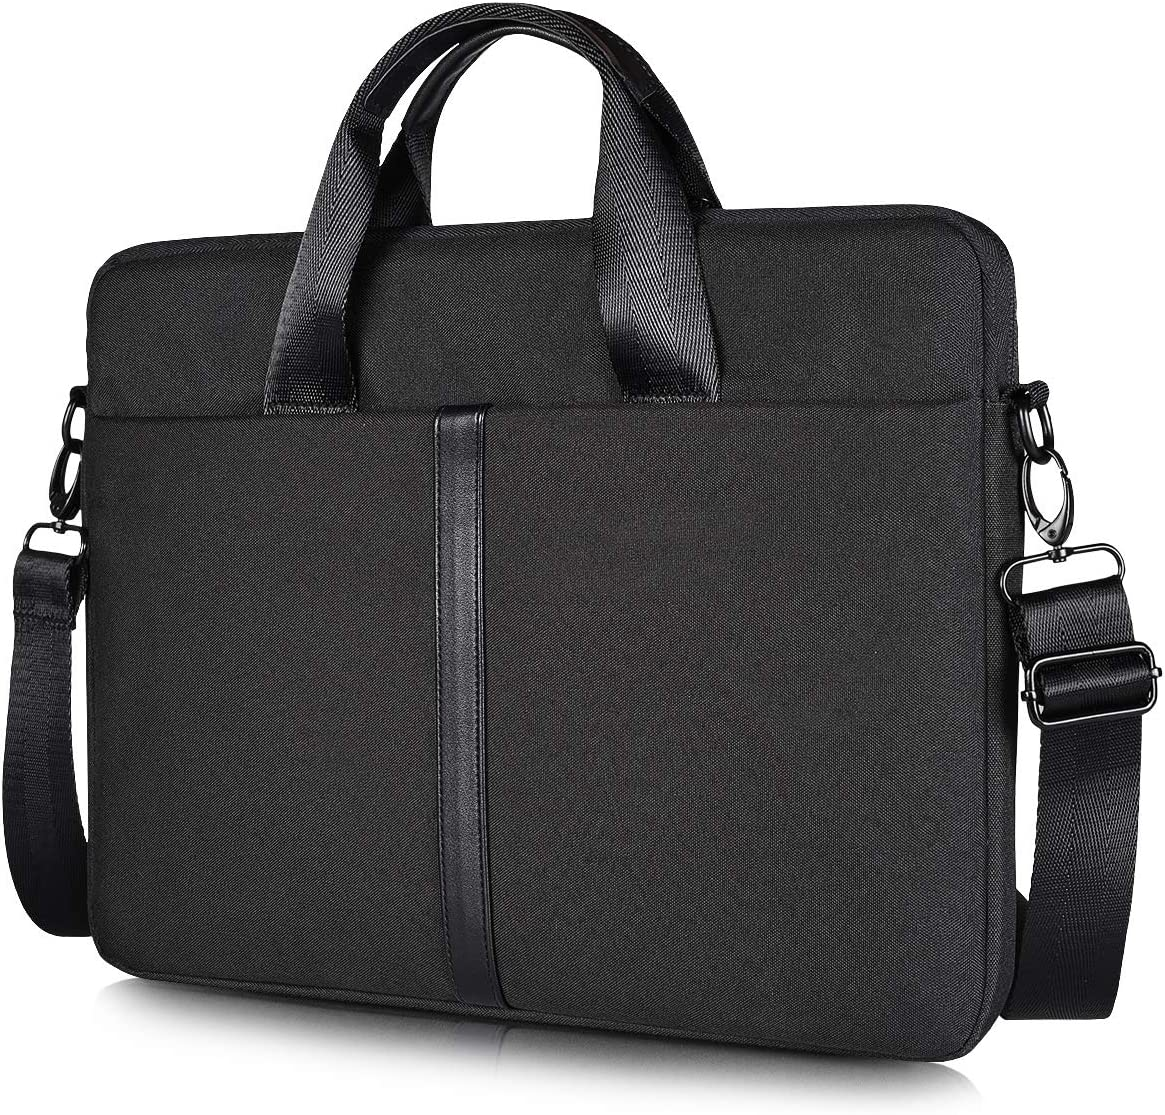 17.3 inch Laptop Shoulder Bag for HP 17.3